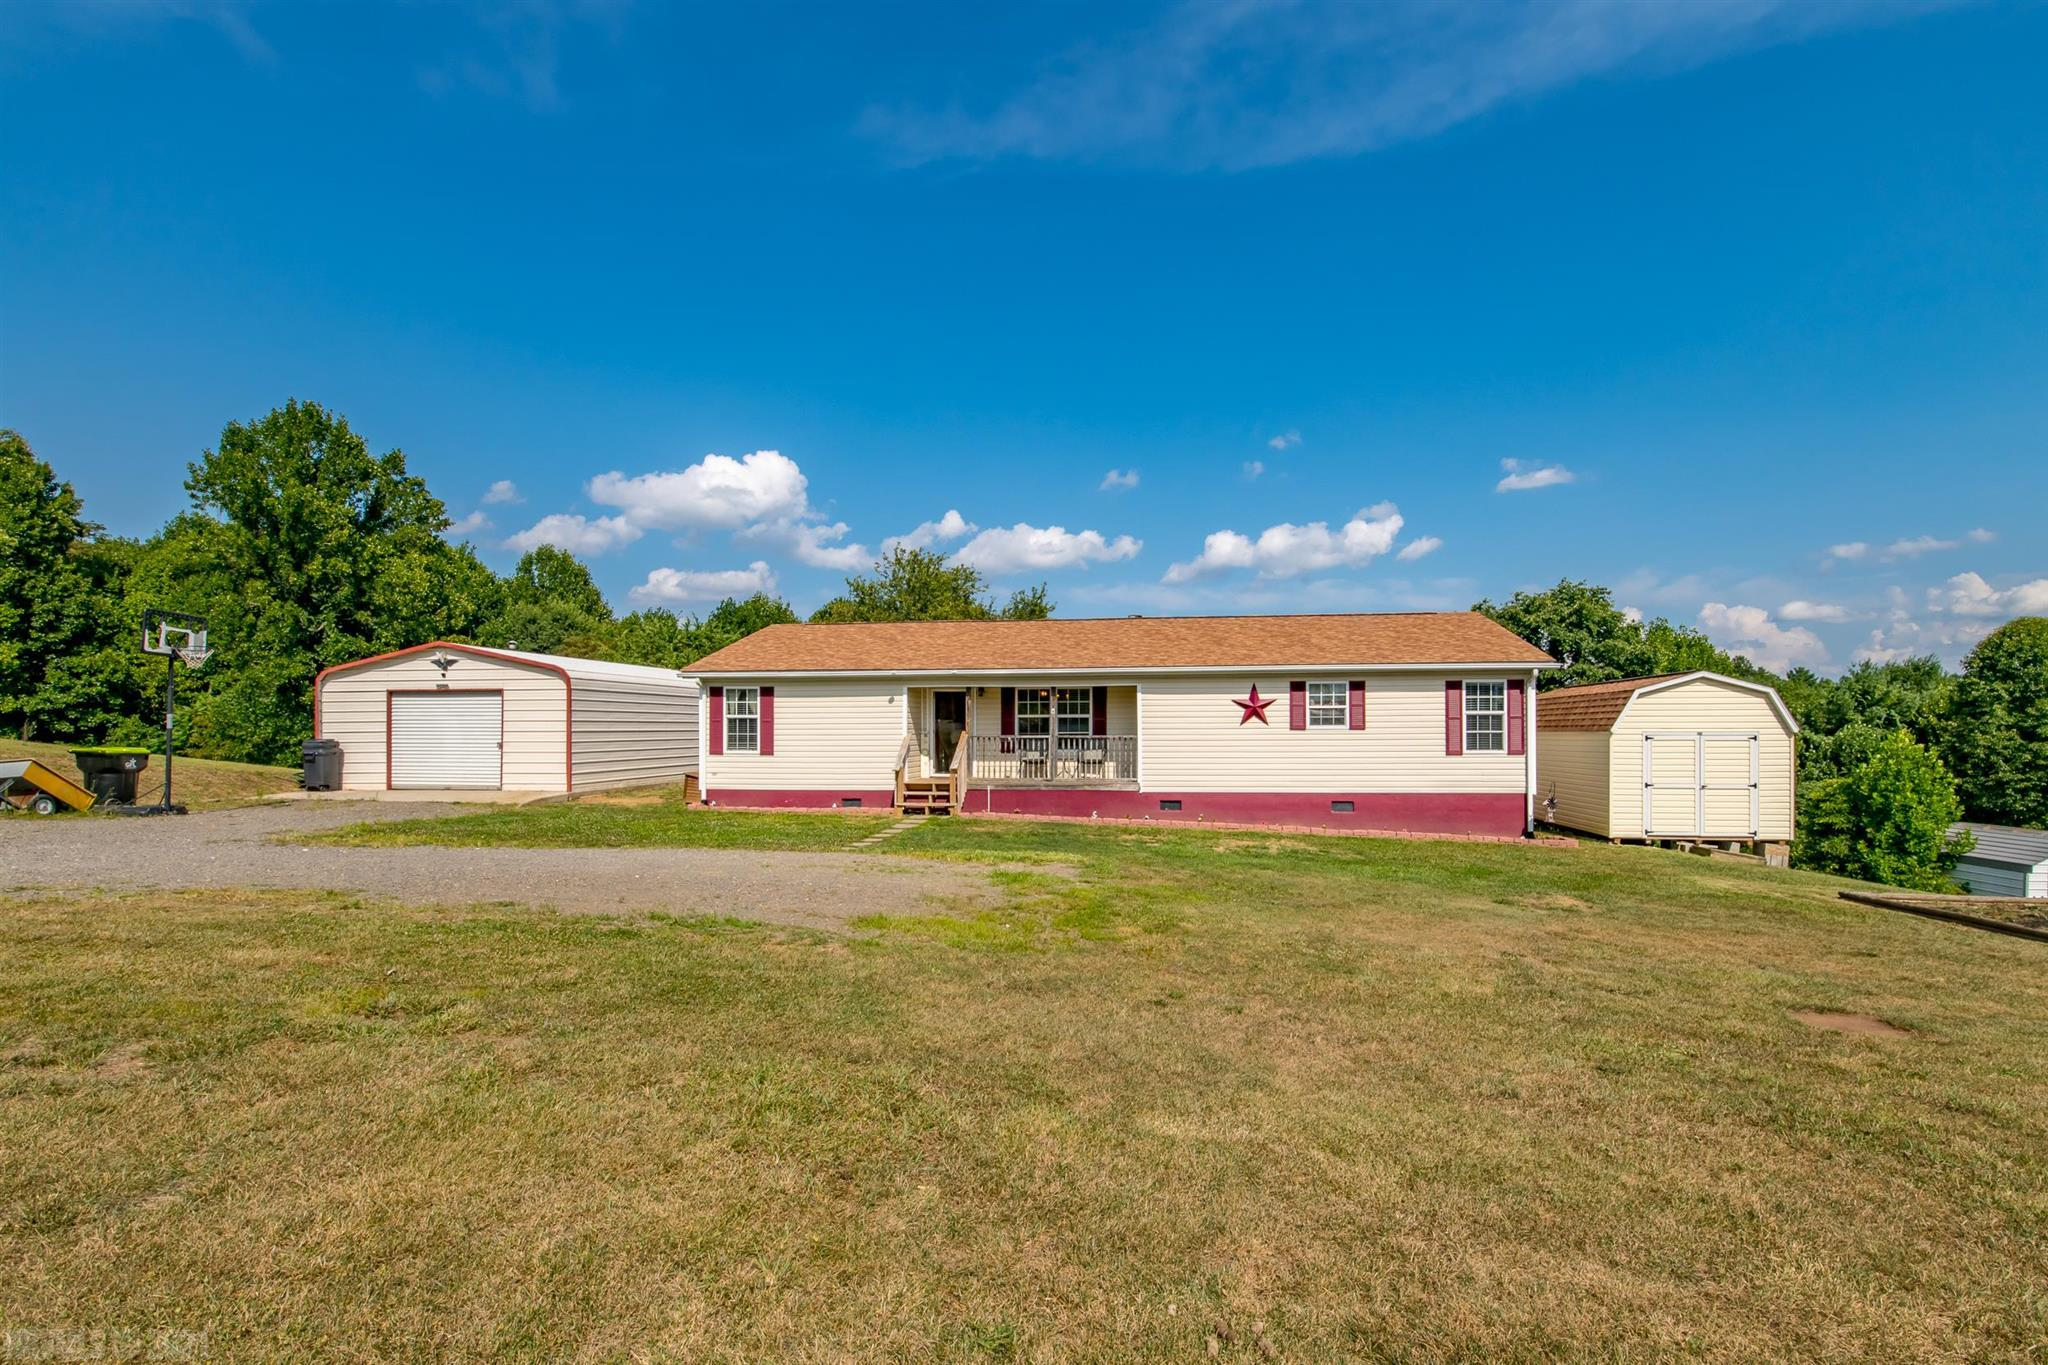 Take a look at this beautifully remodeled 4 bedroom double-wide home in Woodlawn! This home has over an acre of land, and has a small stream in the wooded portion of the property. You have a great layout that utilizes every square inch of this home well. There was a new heat pump installed in 2020 that provides central heat and air for comfort. The covered back deck is perfect for entertaining. You are only about 3 miles from Interstate 77, so your location is very convenient. You're also not right in town. The home has a new roof that was installed in 2018, and comes with a good sized outbuilding, as well as a 20 X 31 2 car garage. The garage has power, as well as a wood stove for heat. There is a lot to offer here, with potential for more. In this market, at this price, this one won't last long. Call today for your chance to see it!